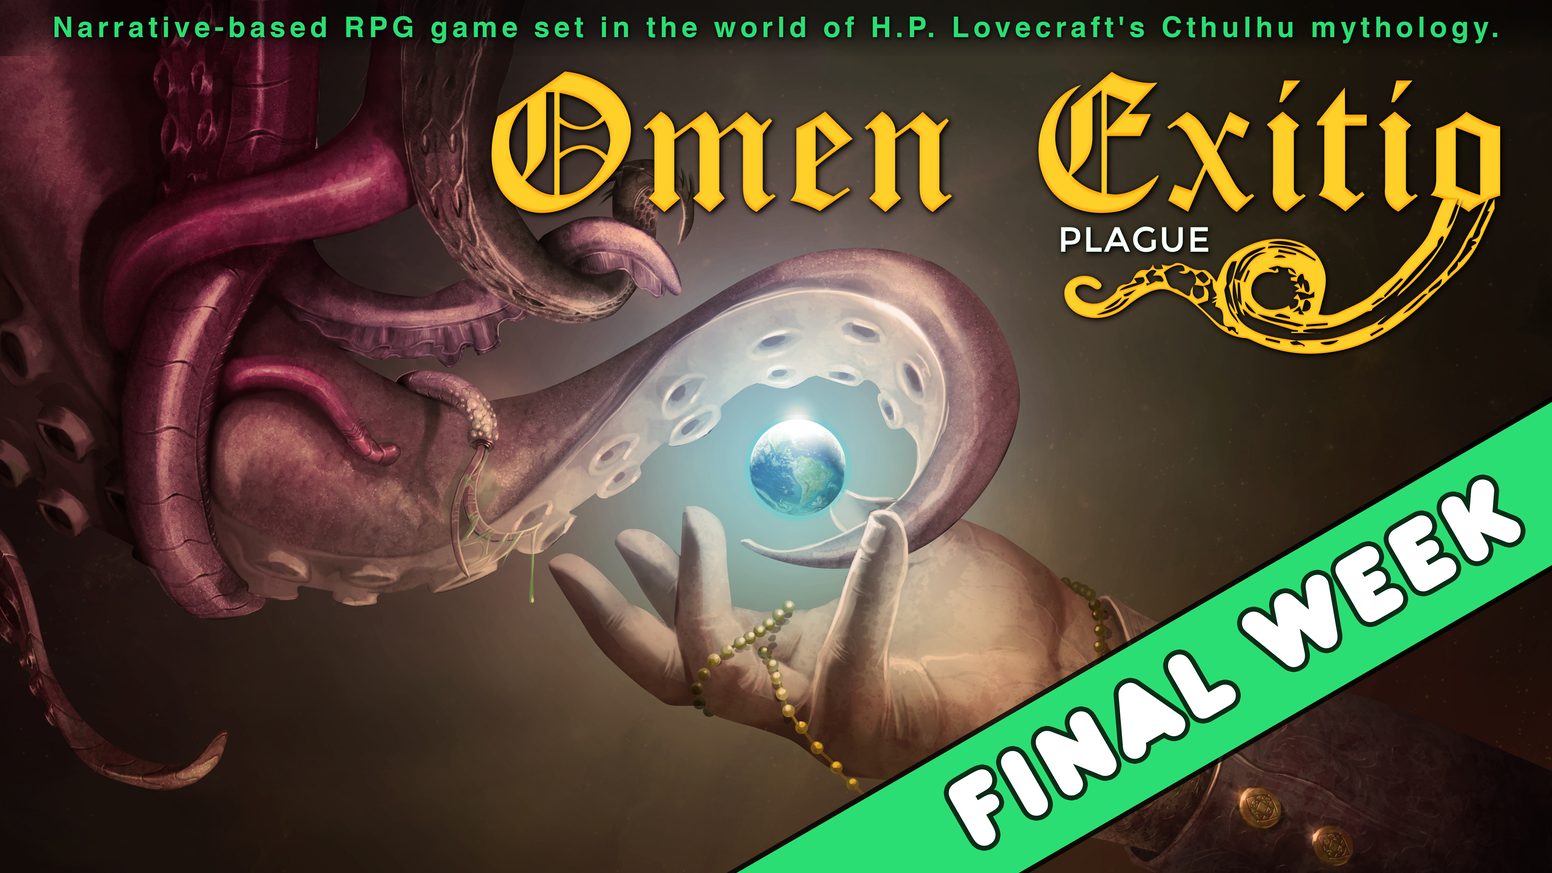 A narrative-based RPG game which draws from the old gamebook genre, set in the world of H.P. Lovecraft's Cthulhu mythology.